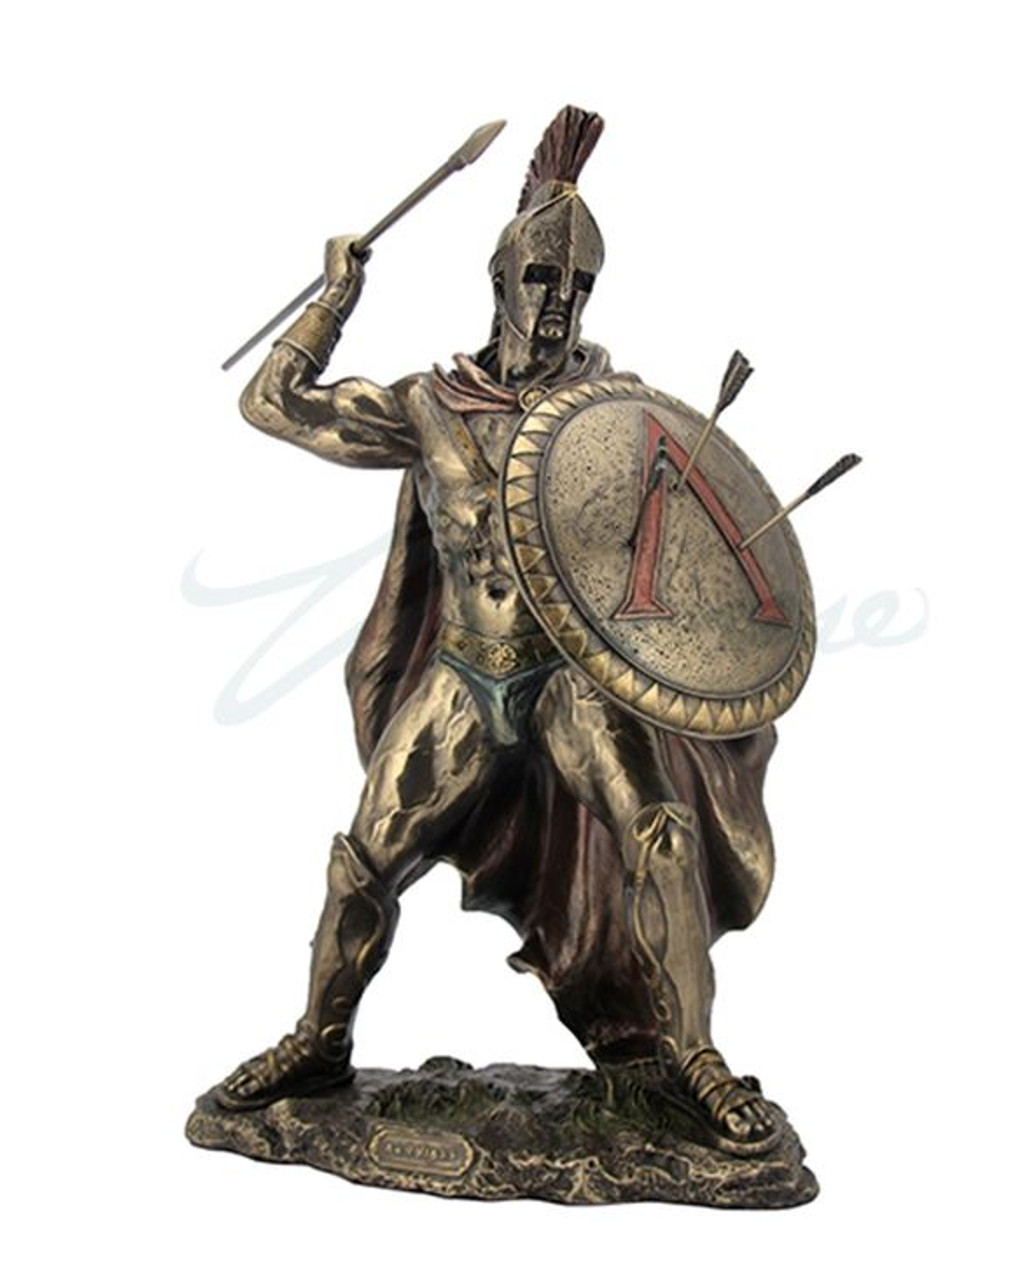 King Leonidas Spartan Warrior Statue With Spear Bronzed (Small)